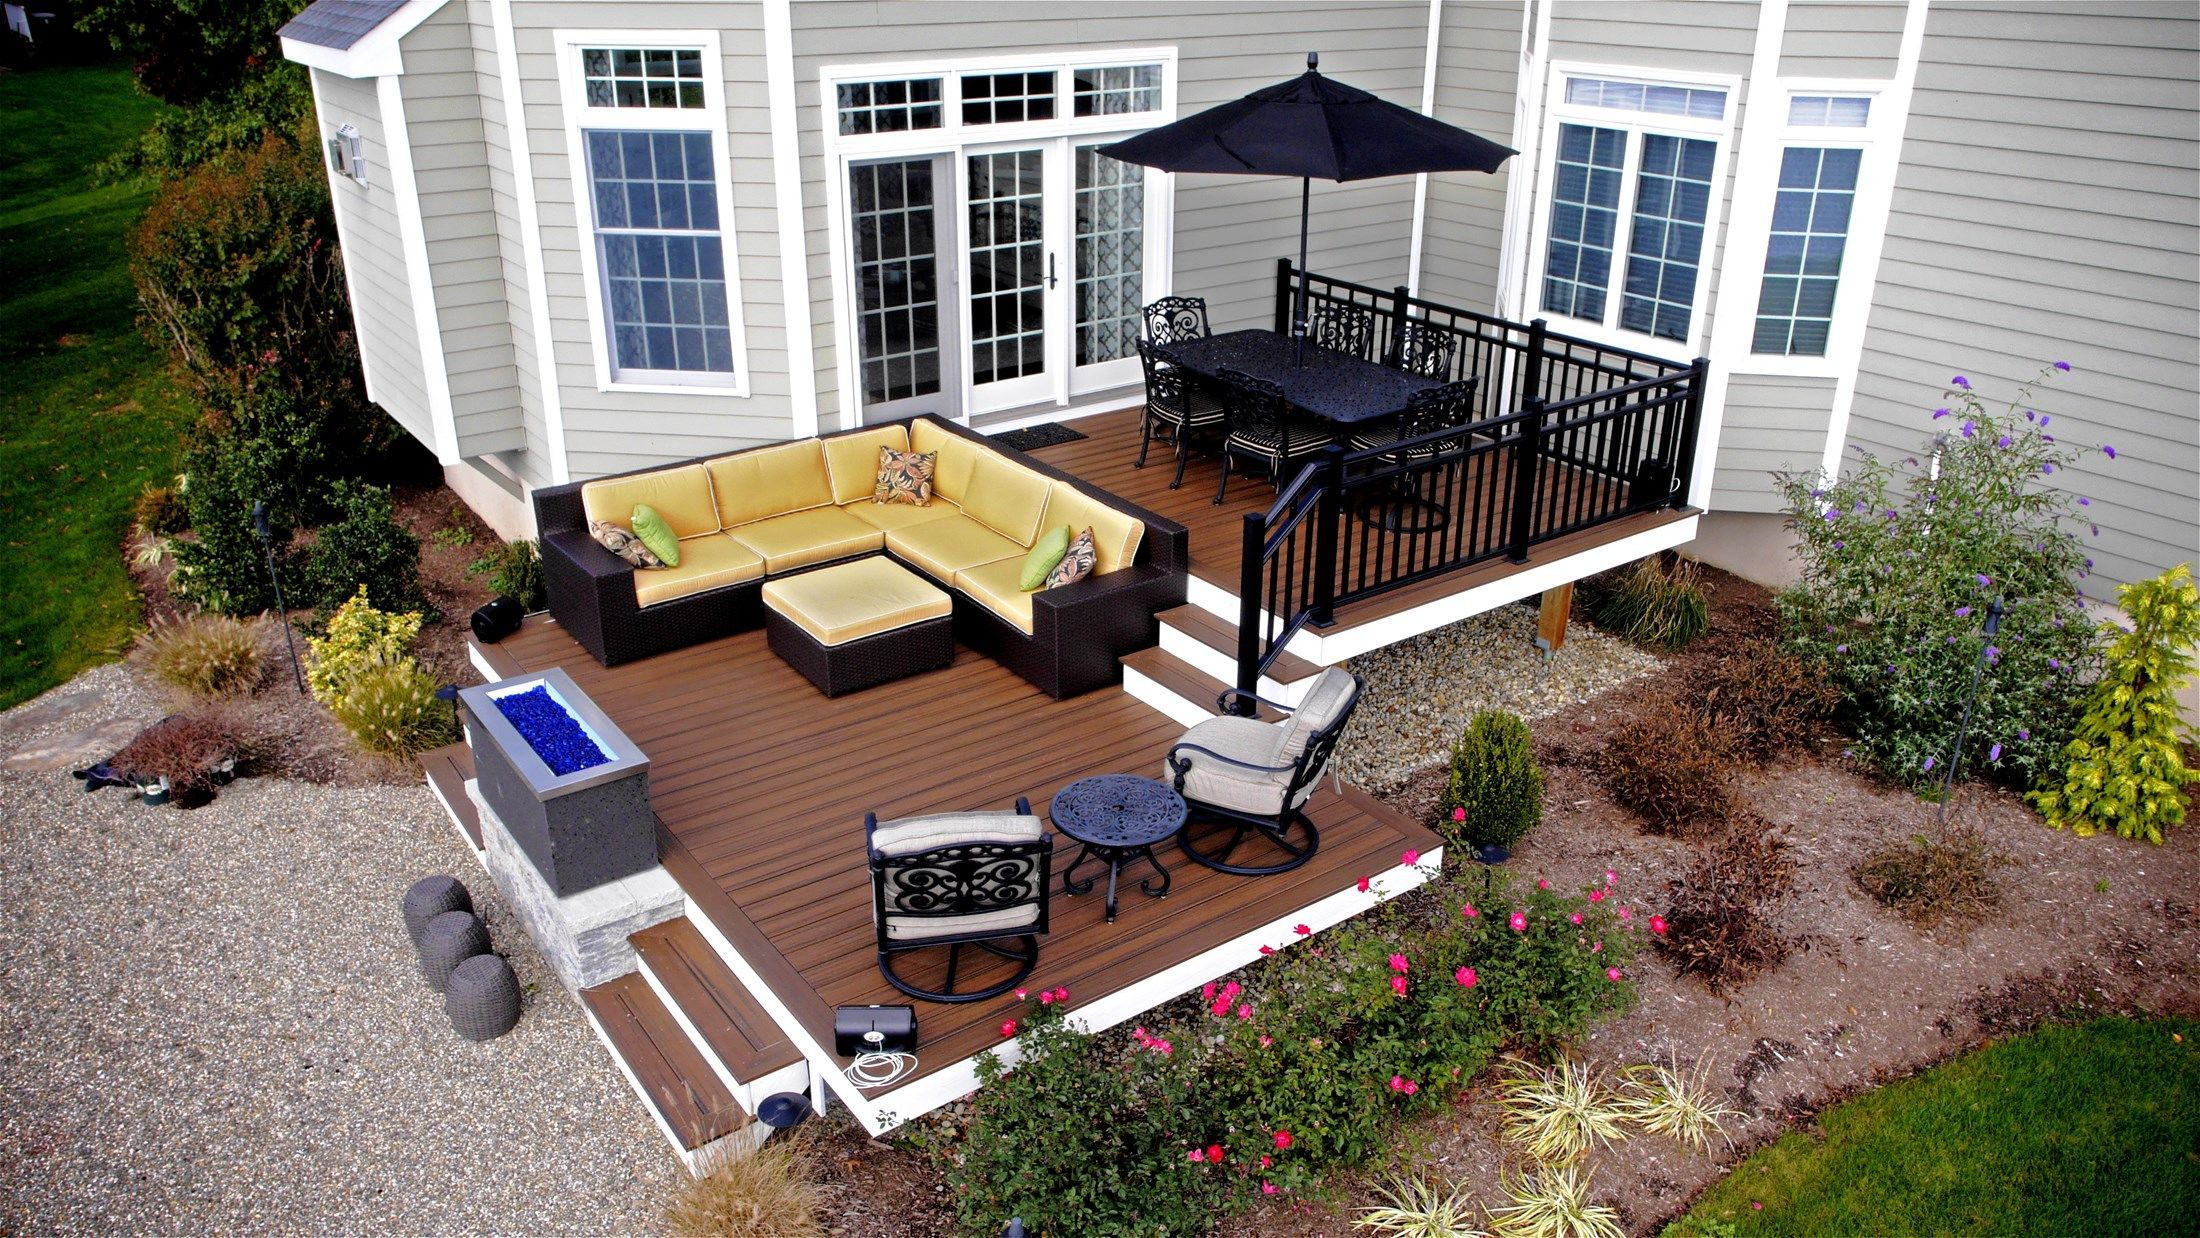 Monmouth NJ Brown Multi Level Trex Deck with Azek Trim Black railings